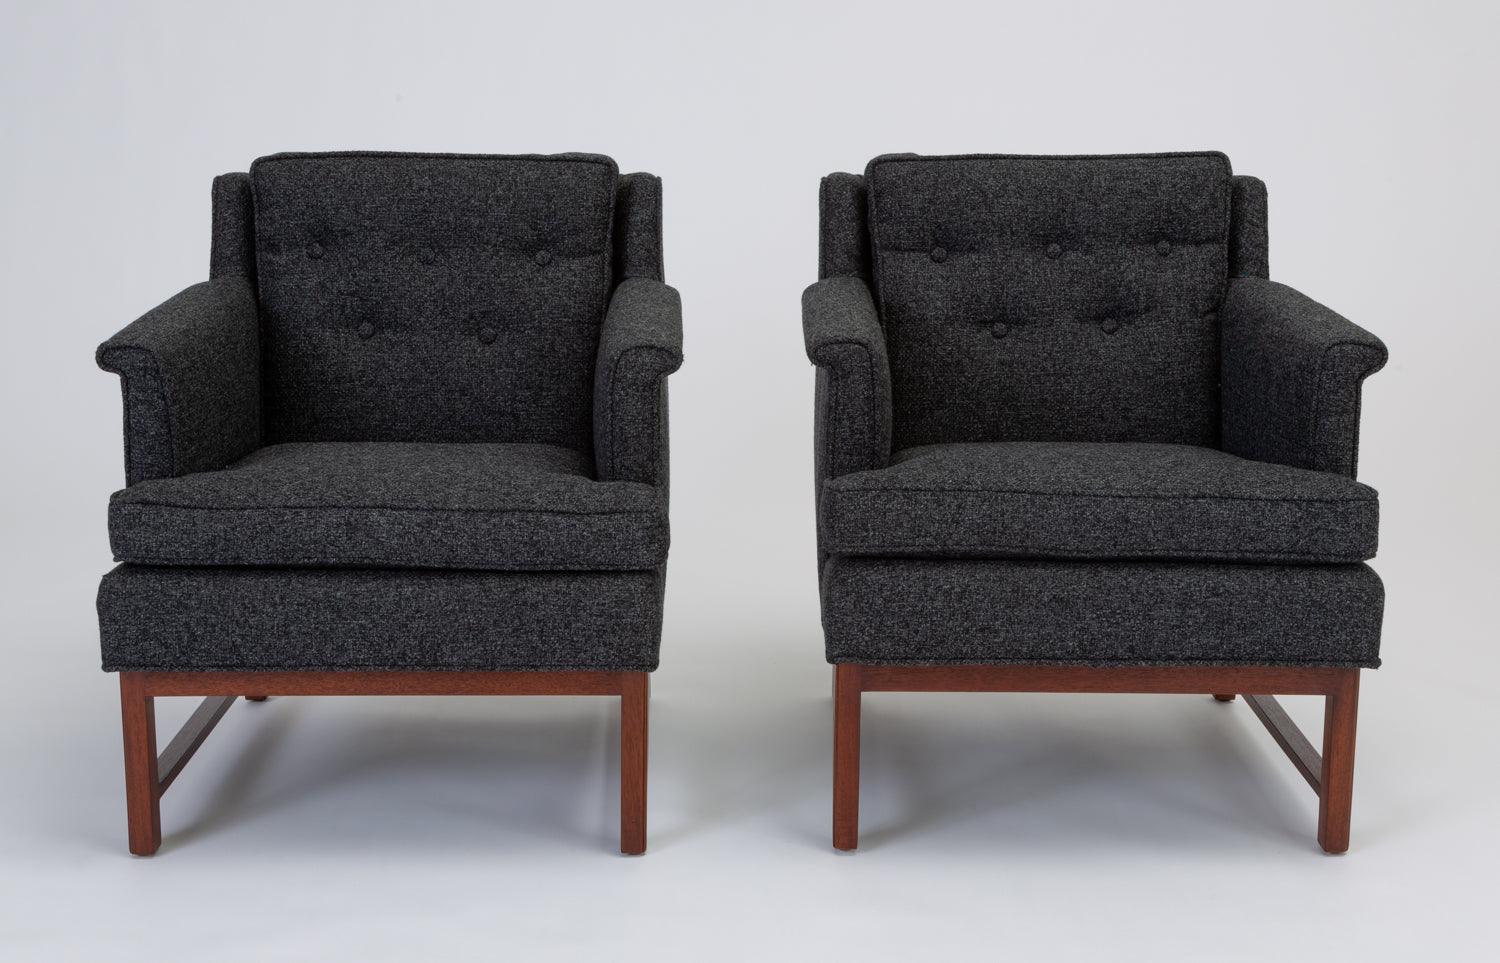 Pair of Petite Lounge Chairs by Edward Wormley for Dunbar